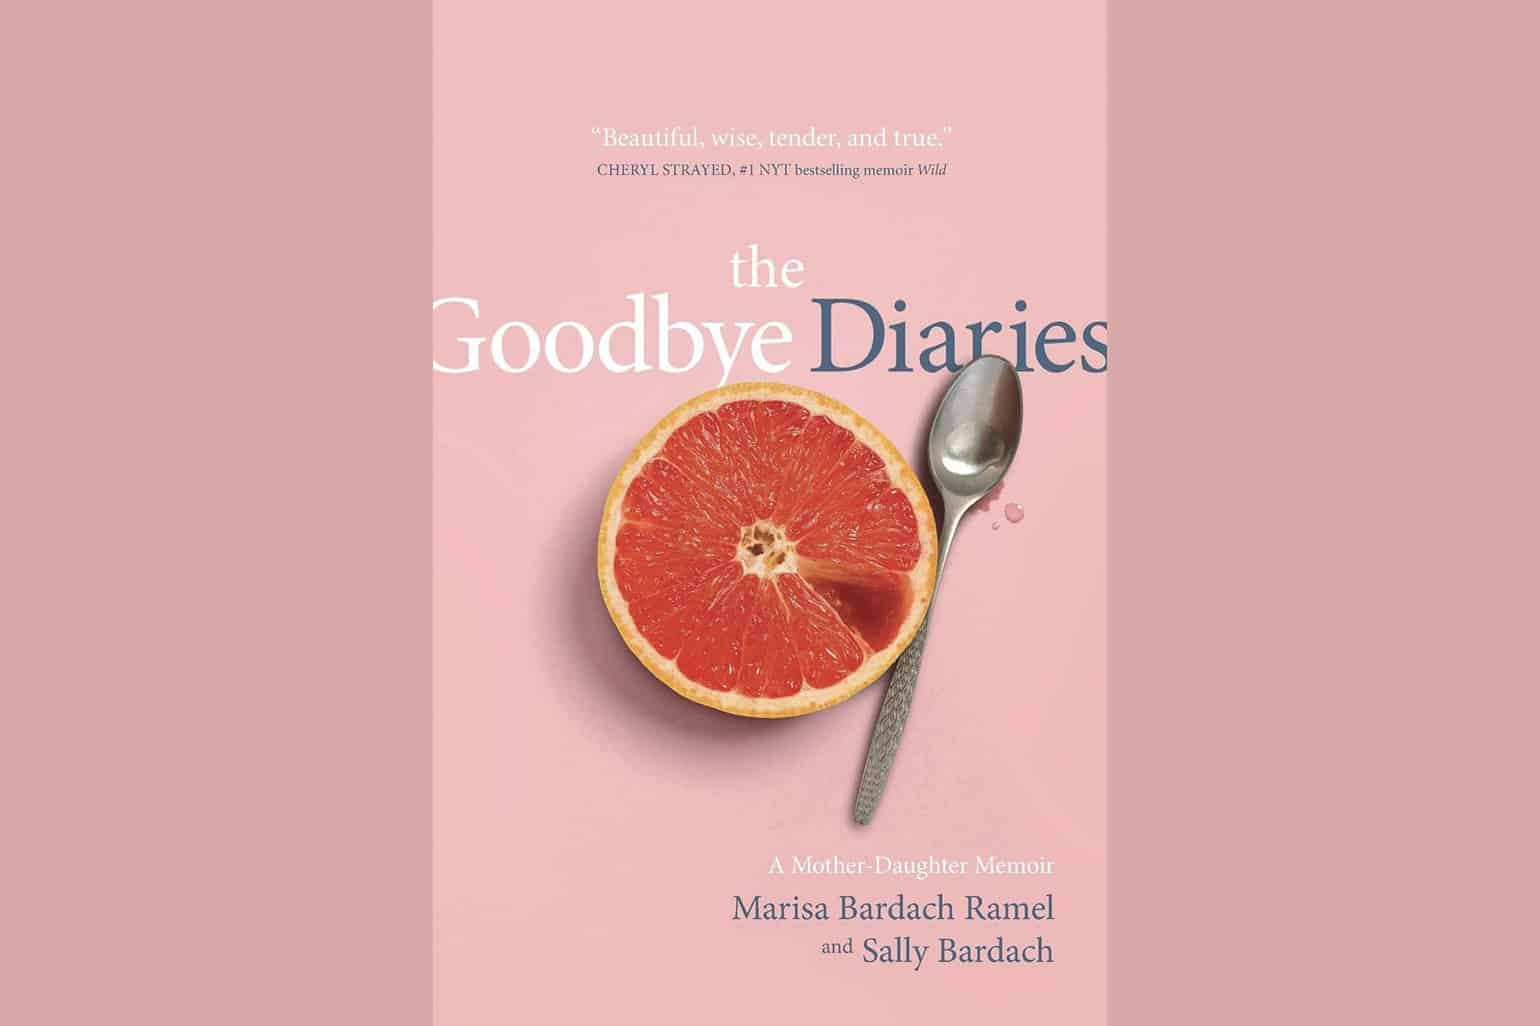 The Goodbye Diaries By Marisa Bardach Ramel And Sally